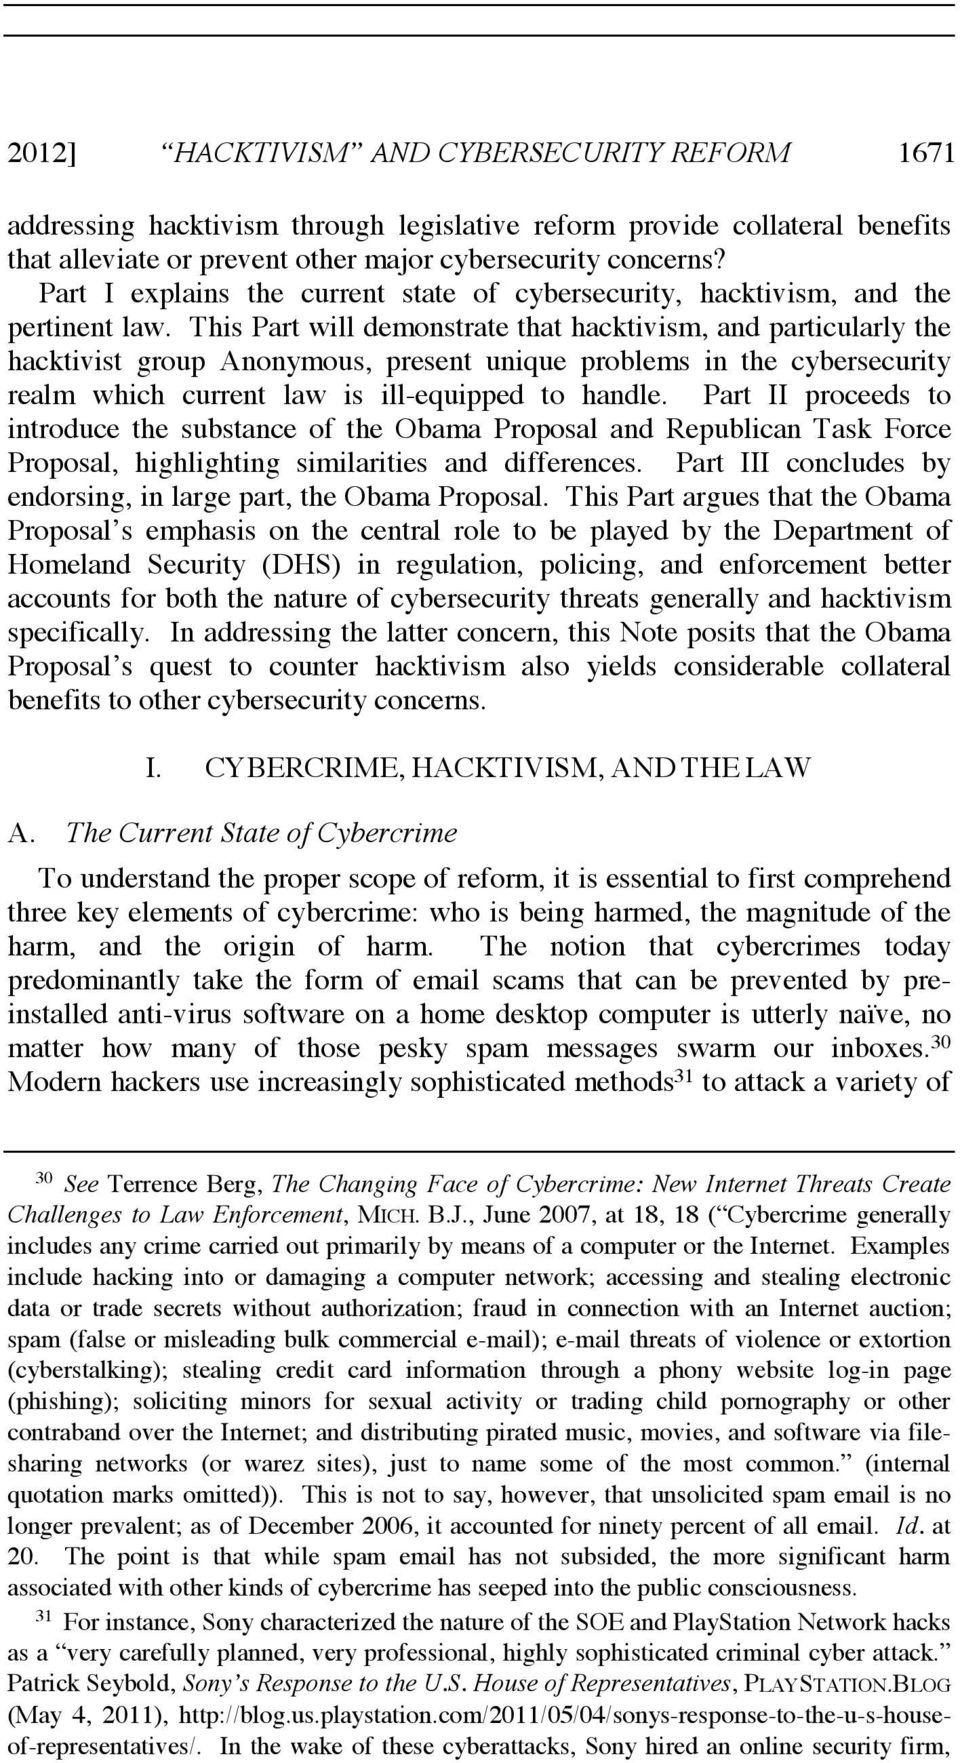 This Part will demonstrate that hacktivism, and particularly the hacktivist group Anonymous, present unique problems in the cybersecurity realm which current law is ill-equipped to handle.